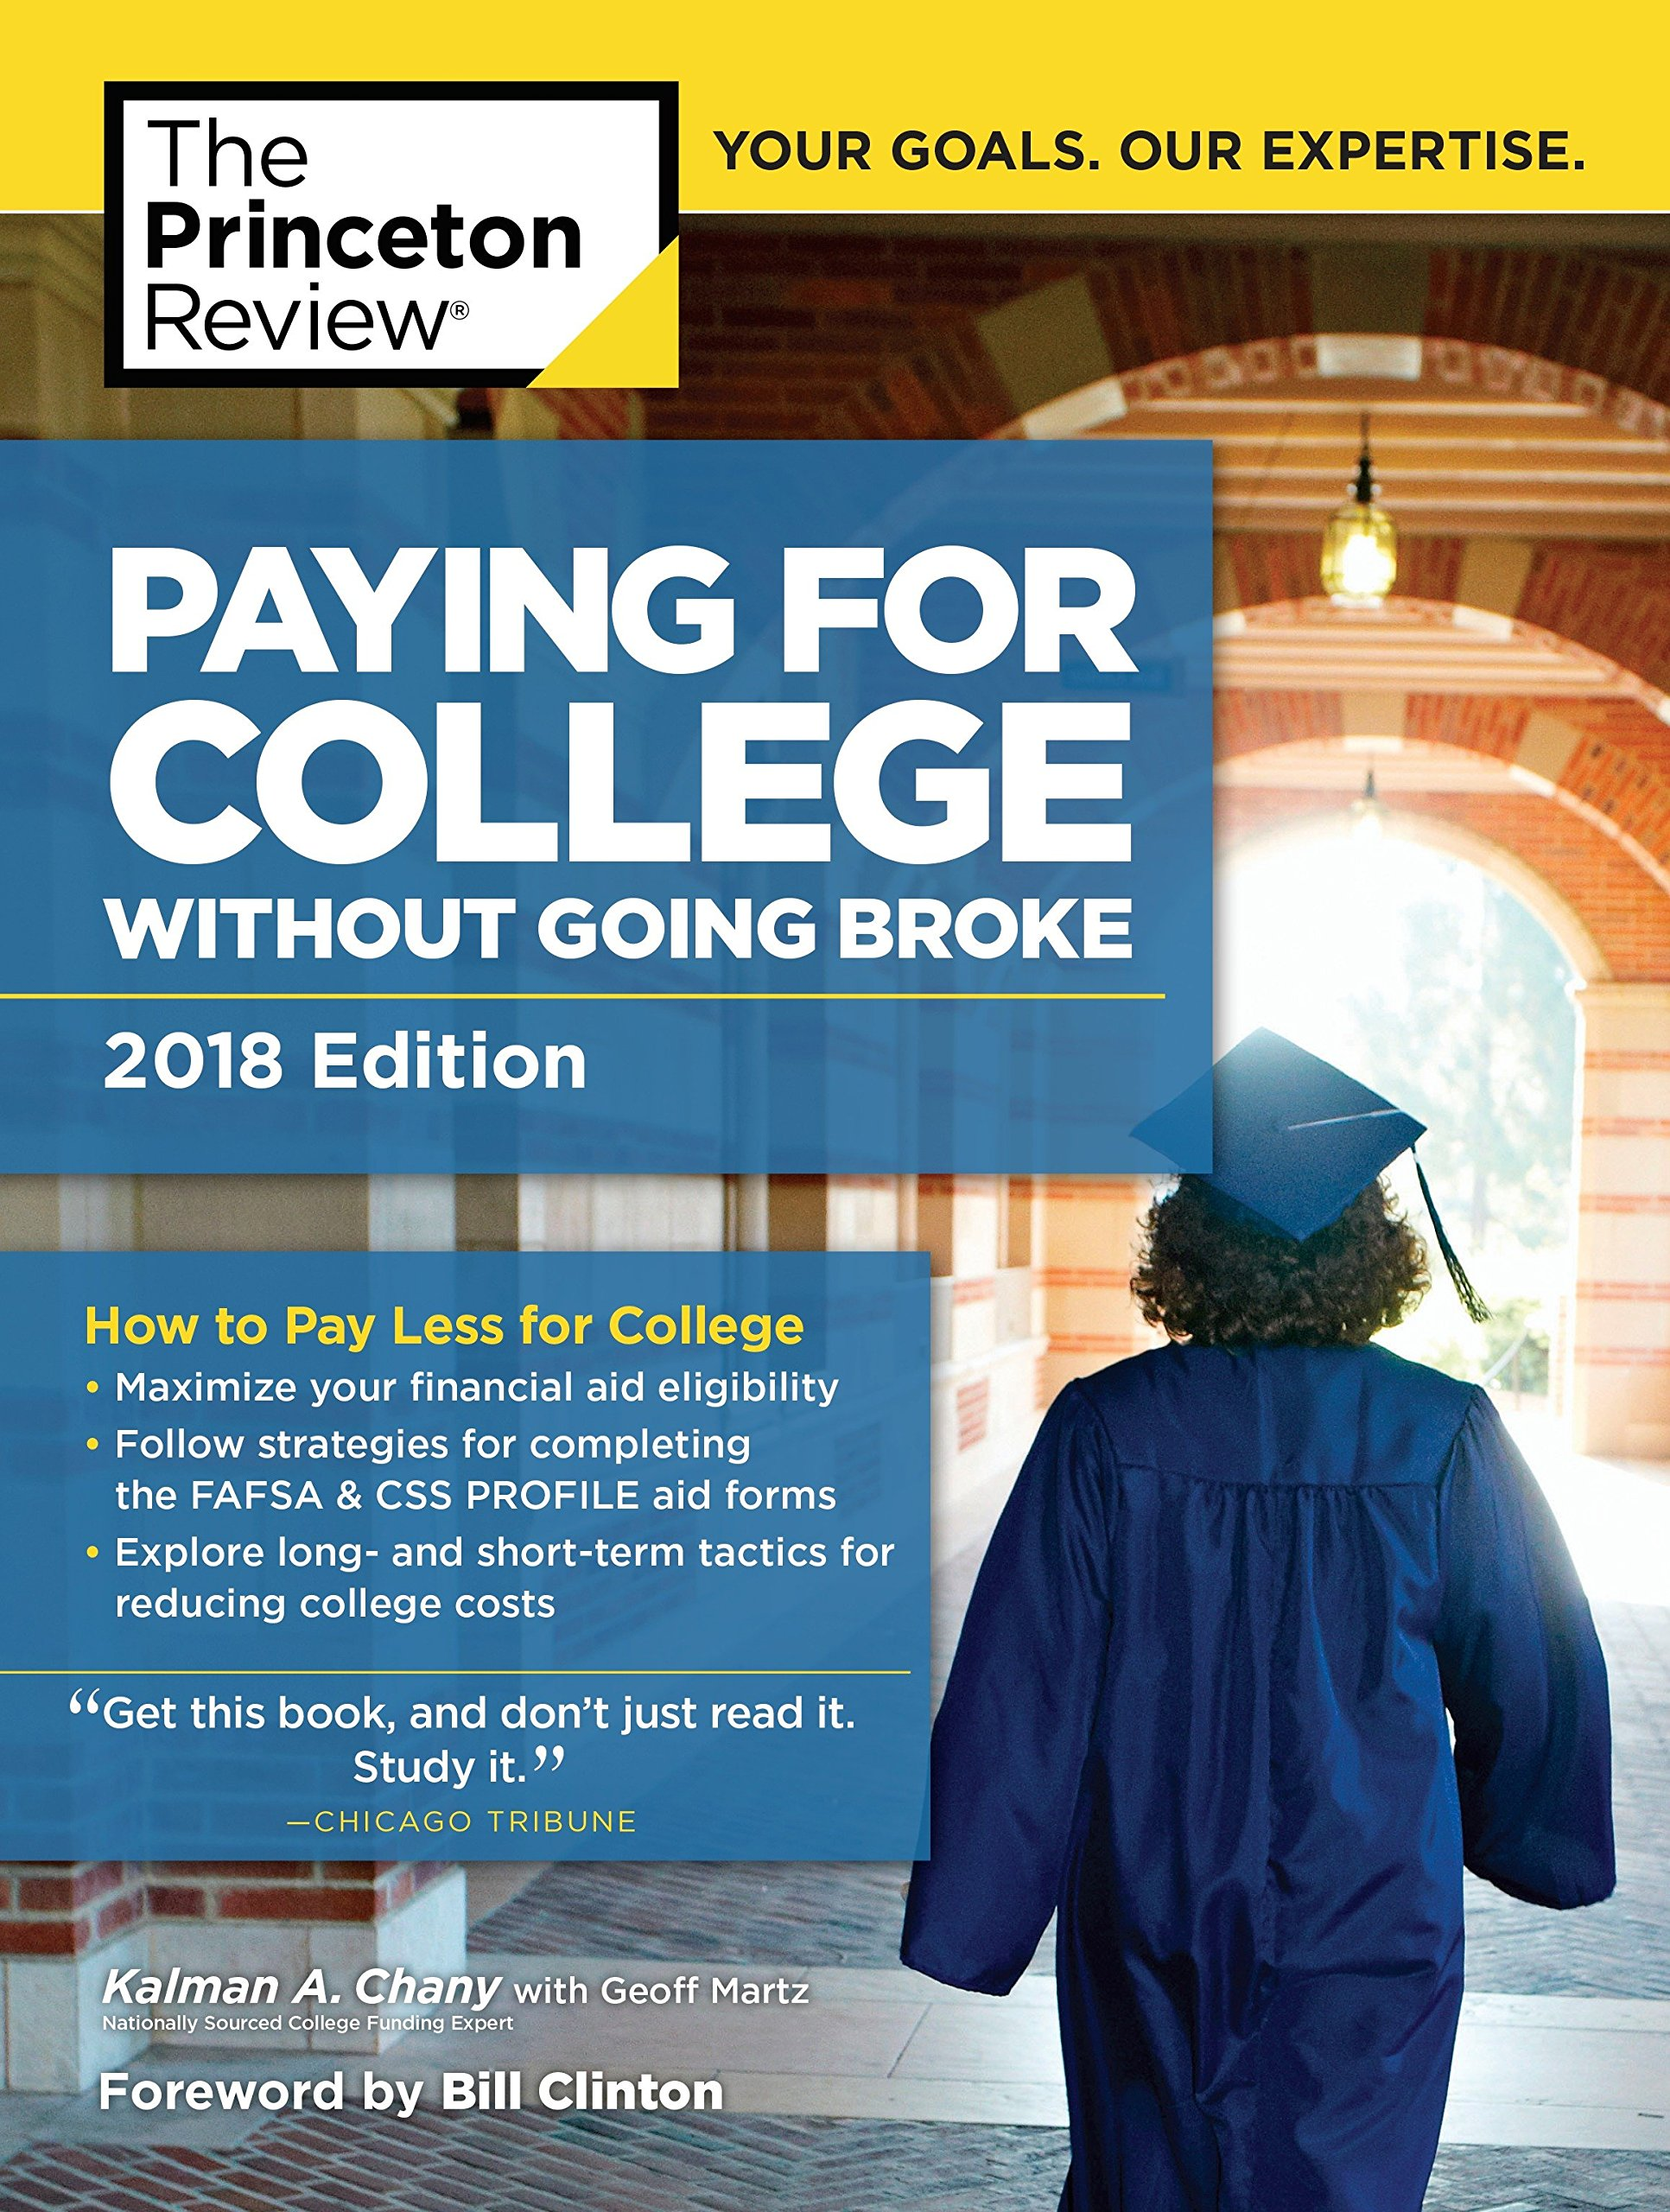 How to Pay for College Without Going Broke